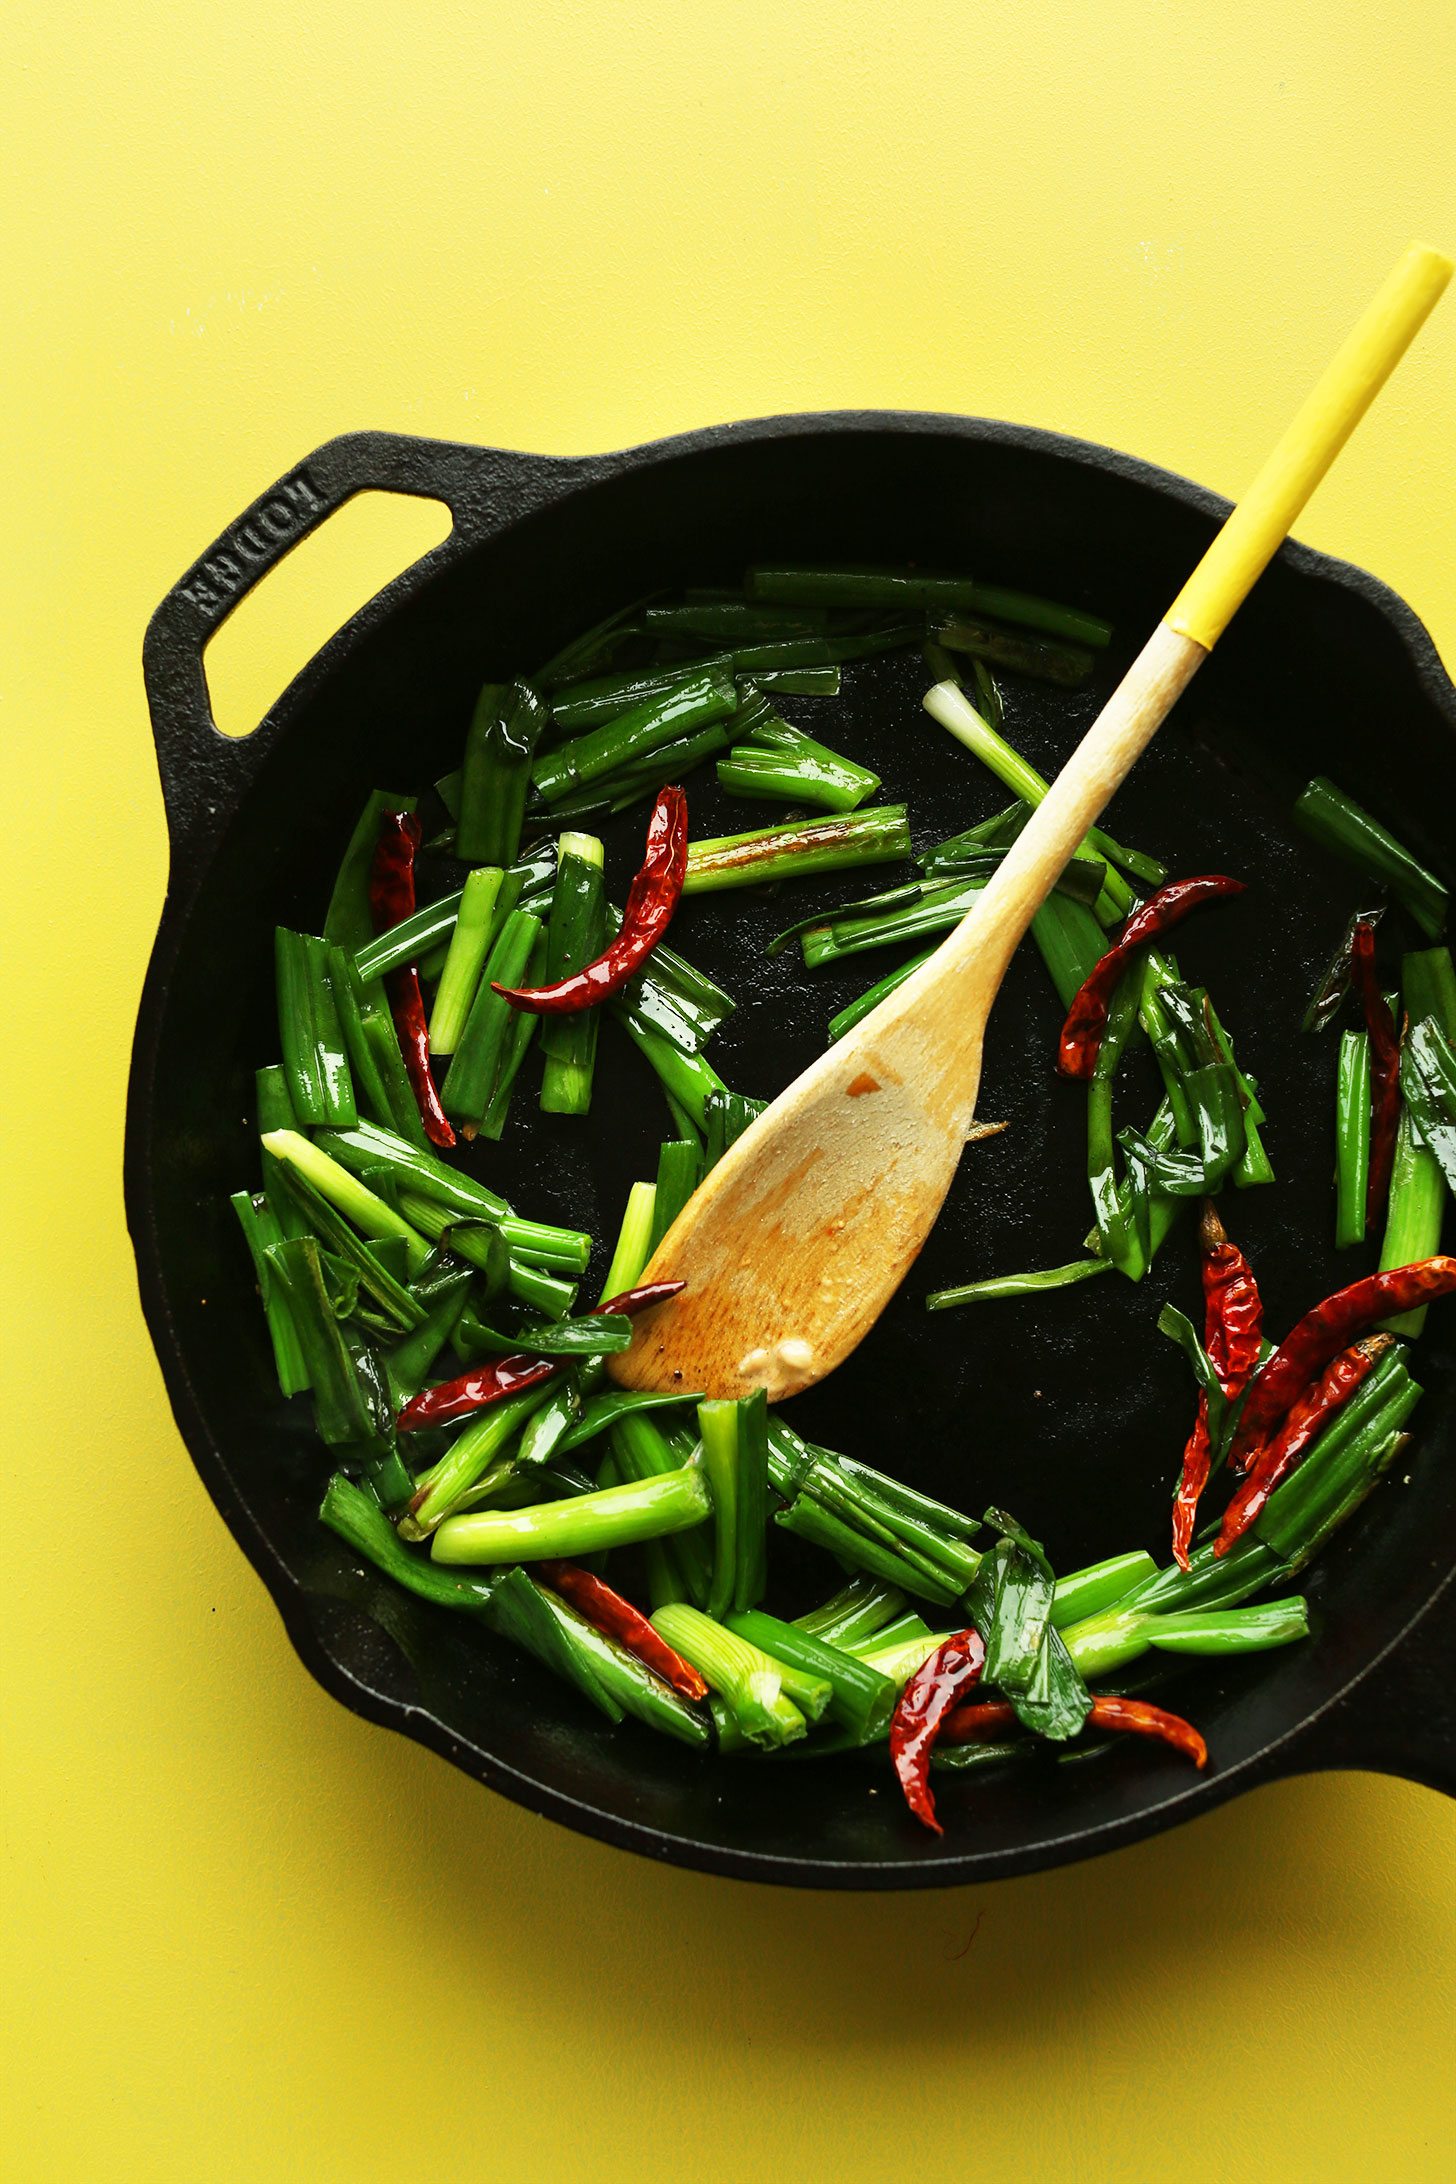 Sautéing green onions and red chilies in a cast-iron skillet